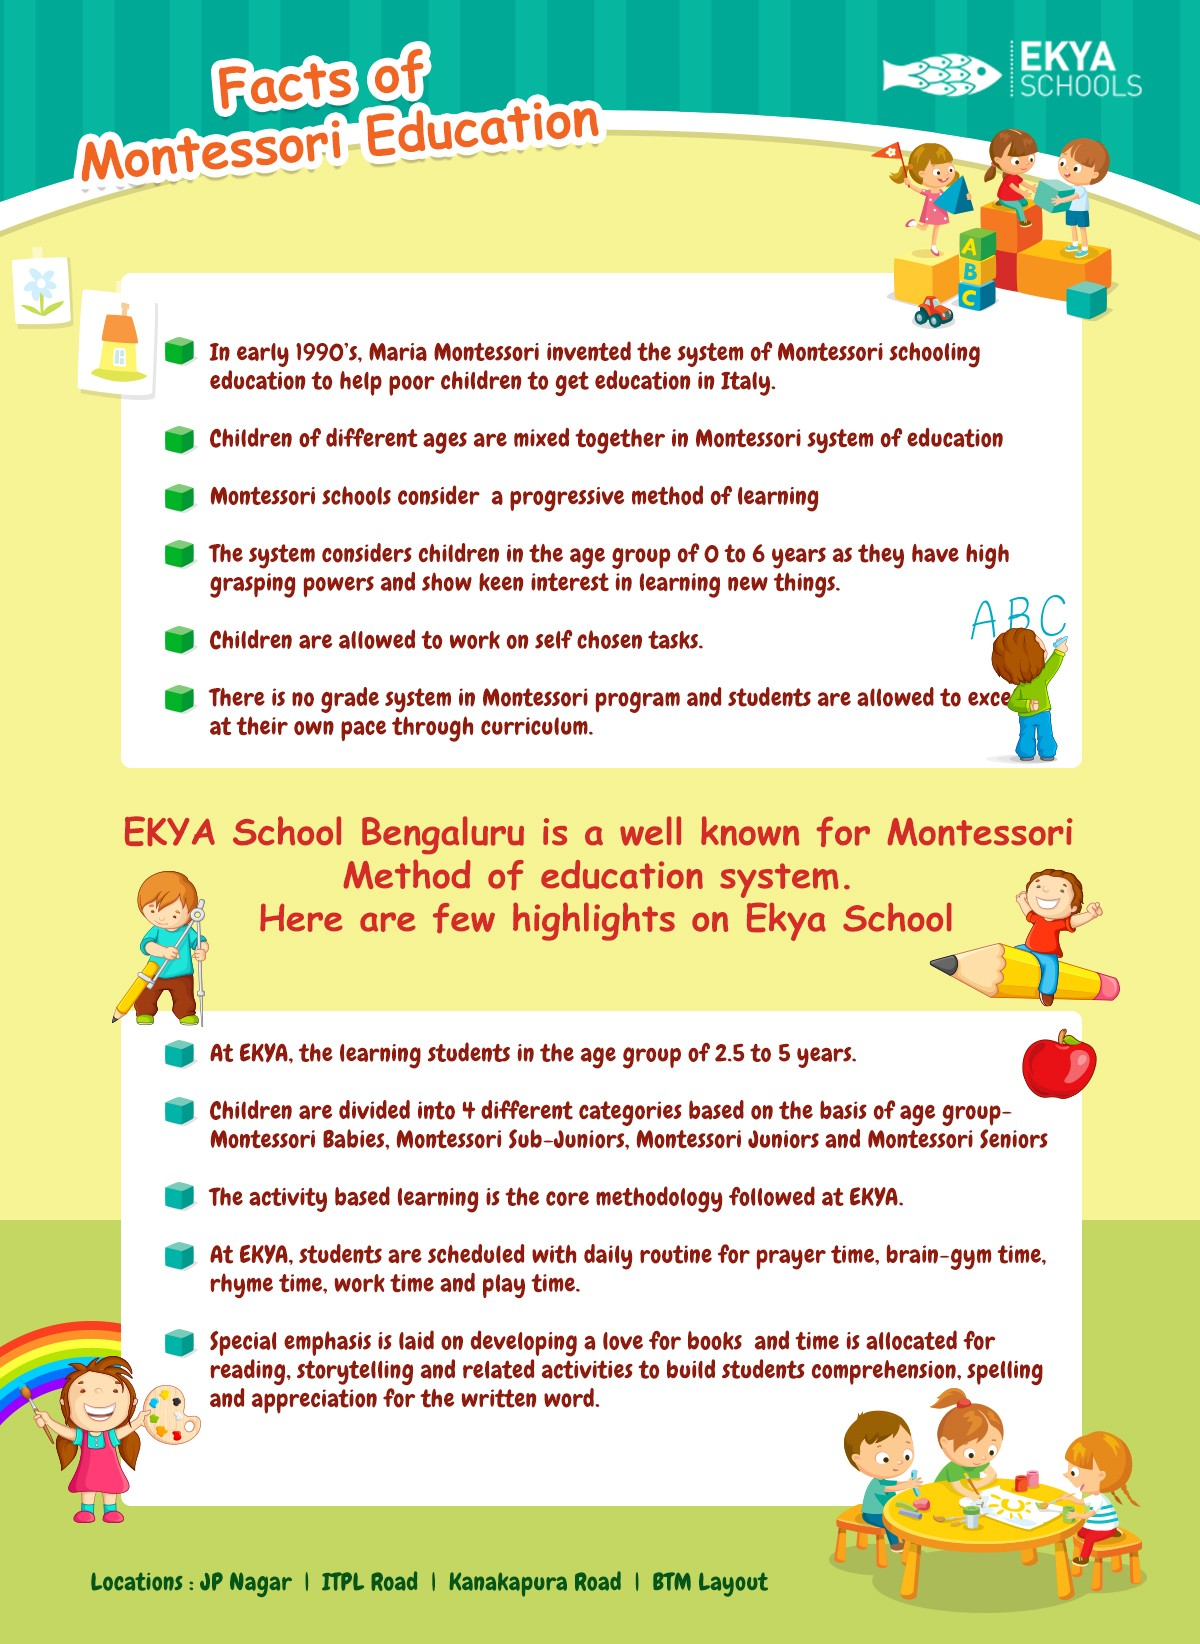 Preschool Education Is An Early Childhood Program Which Allows Children To Play While Learning The Ideal Age Get Enrolled In Between